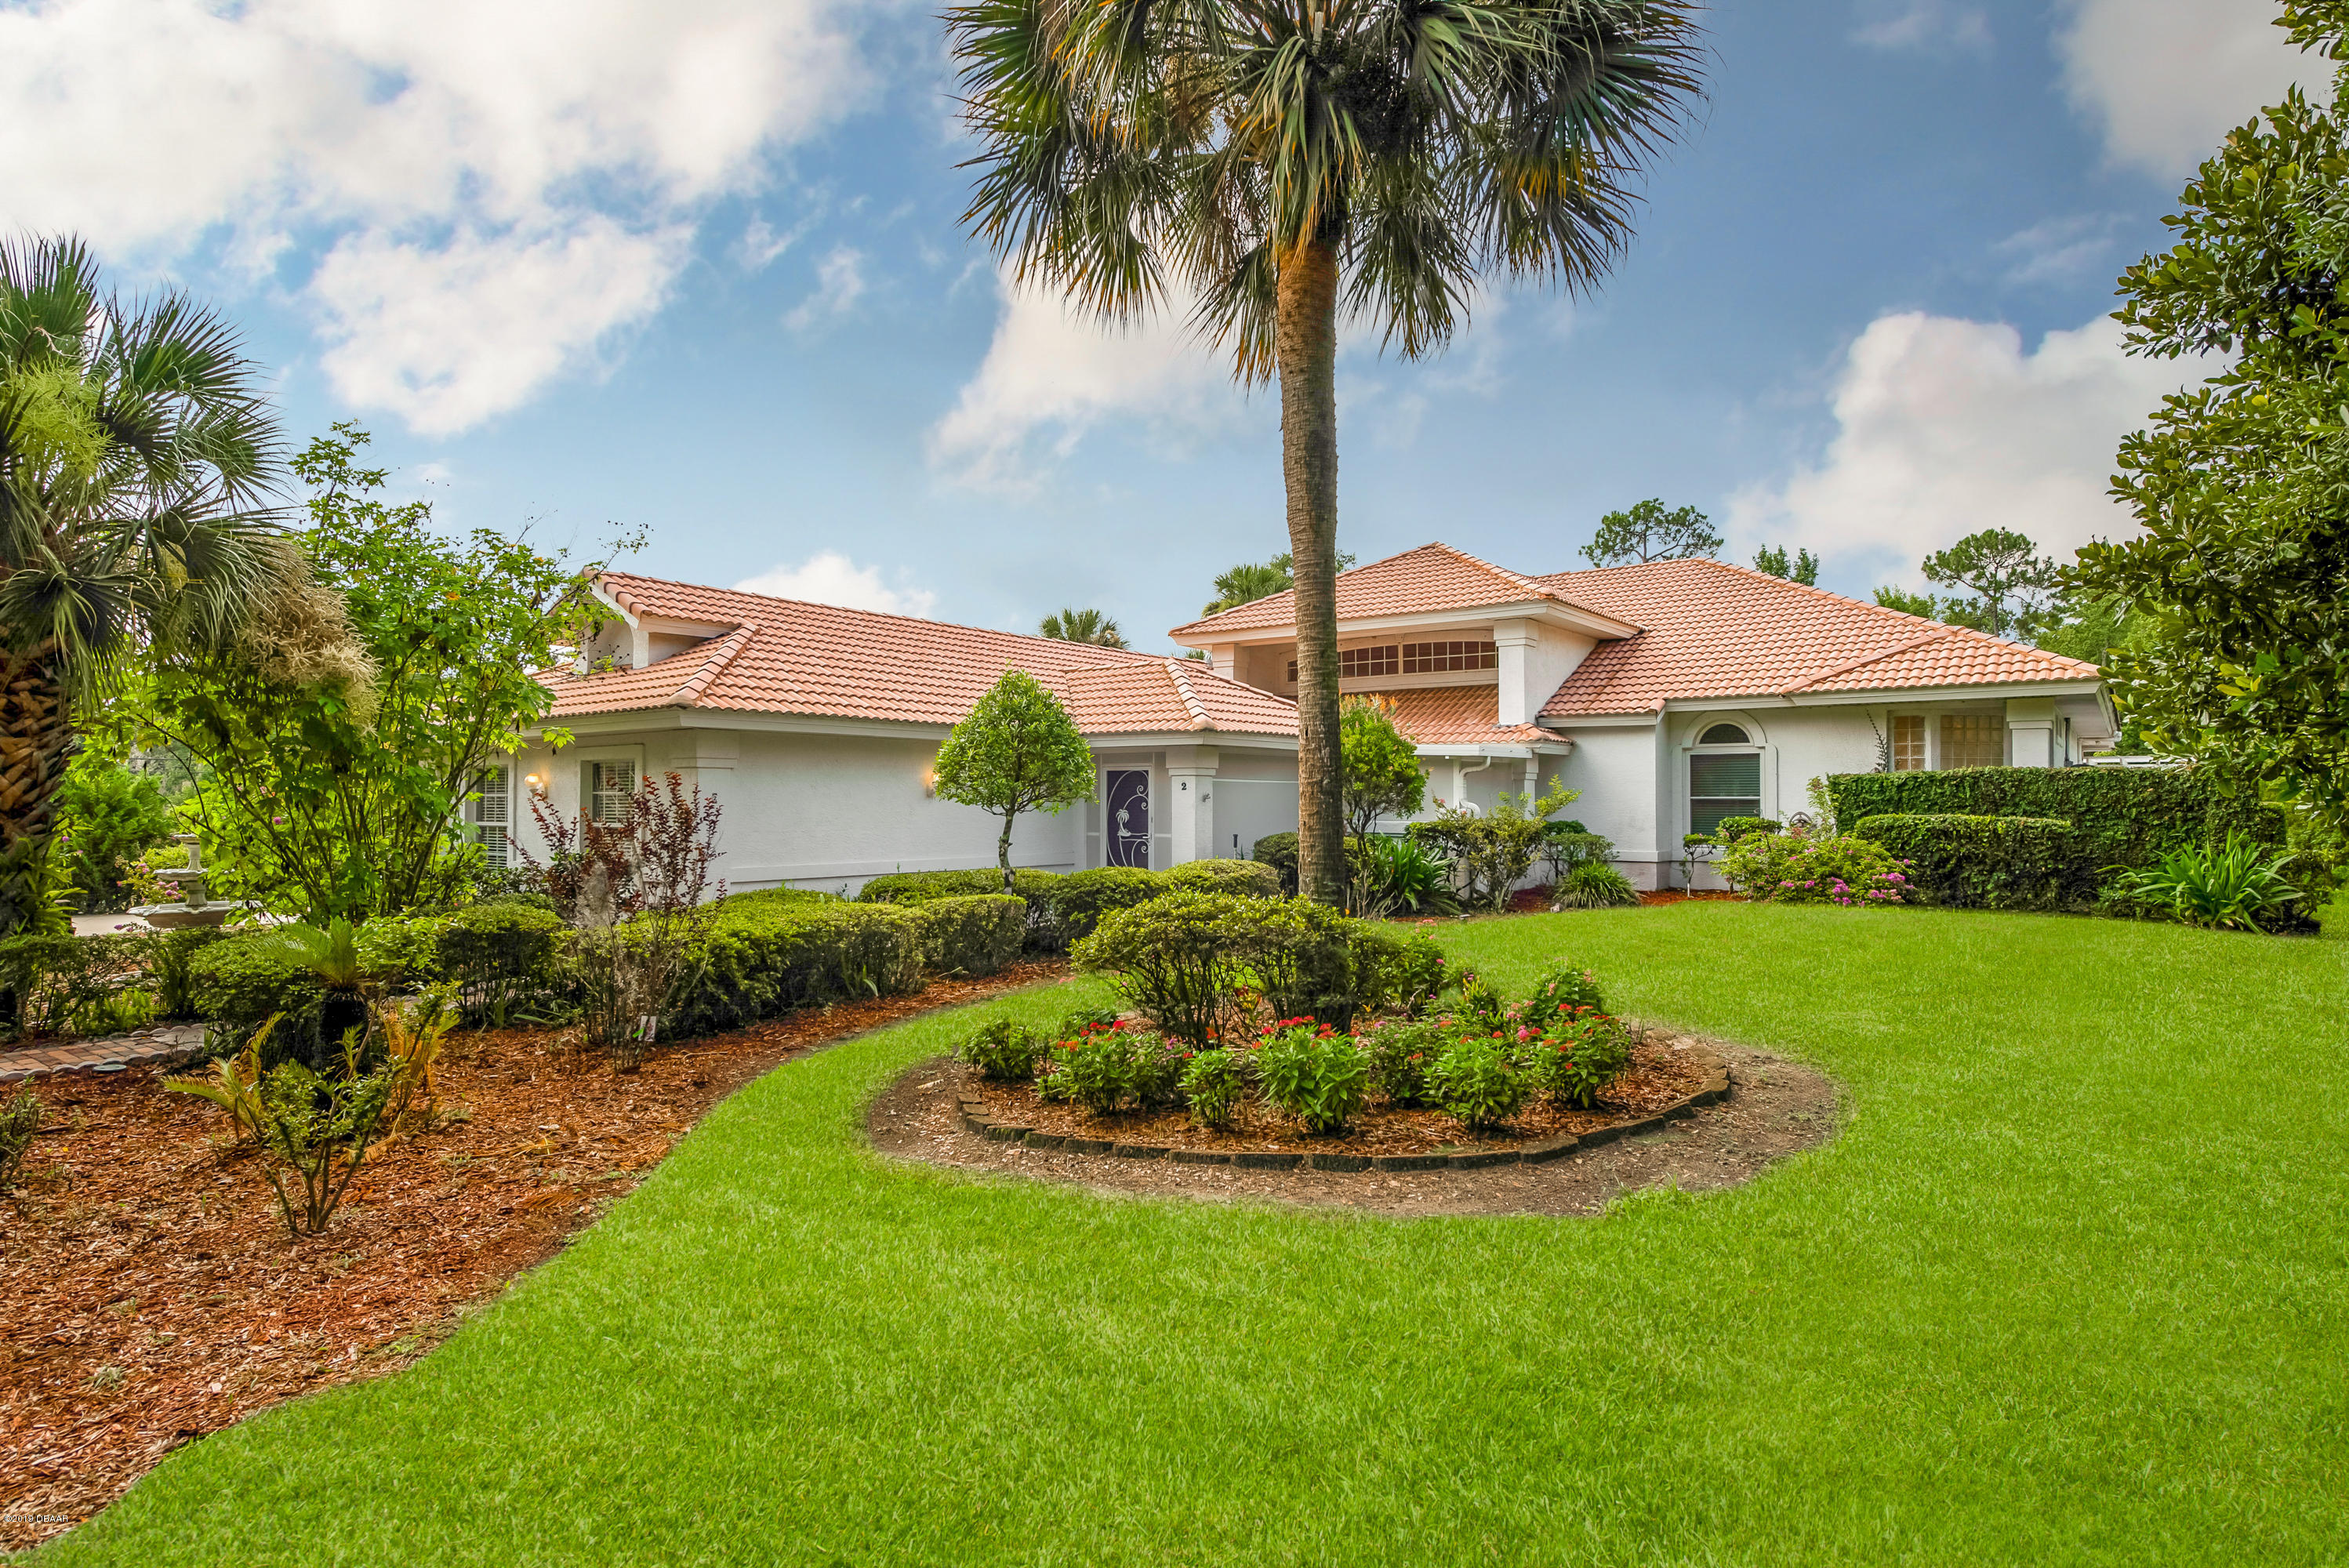 Photo of 2 Moss Point Drive, Ormond Beach, FL 32174